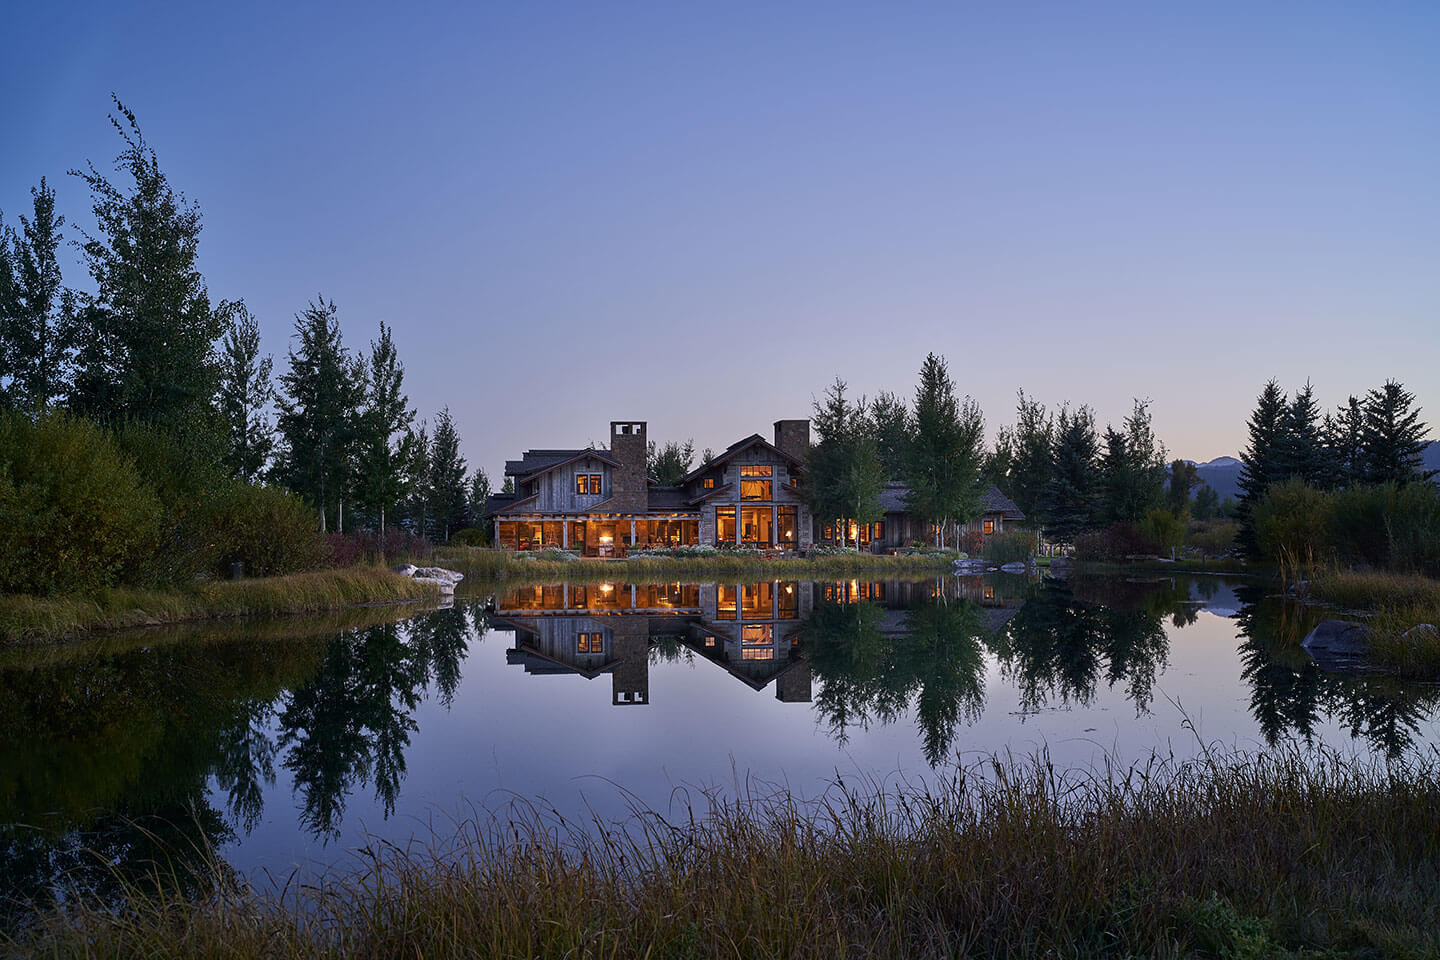 Reflection of residence in water at twilight